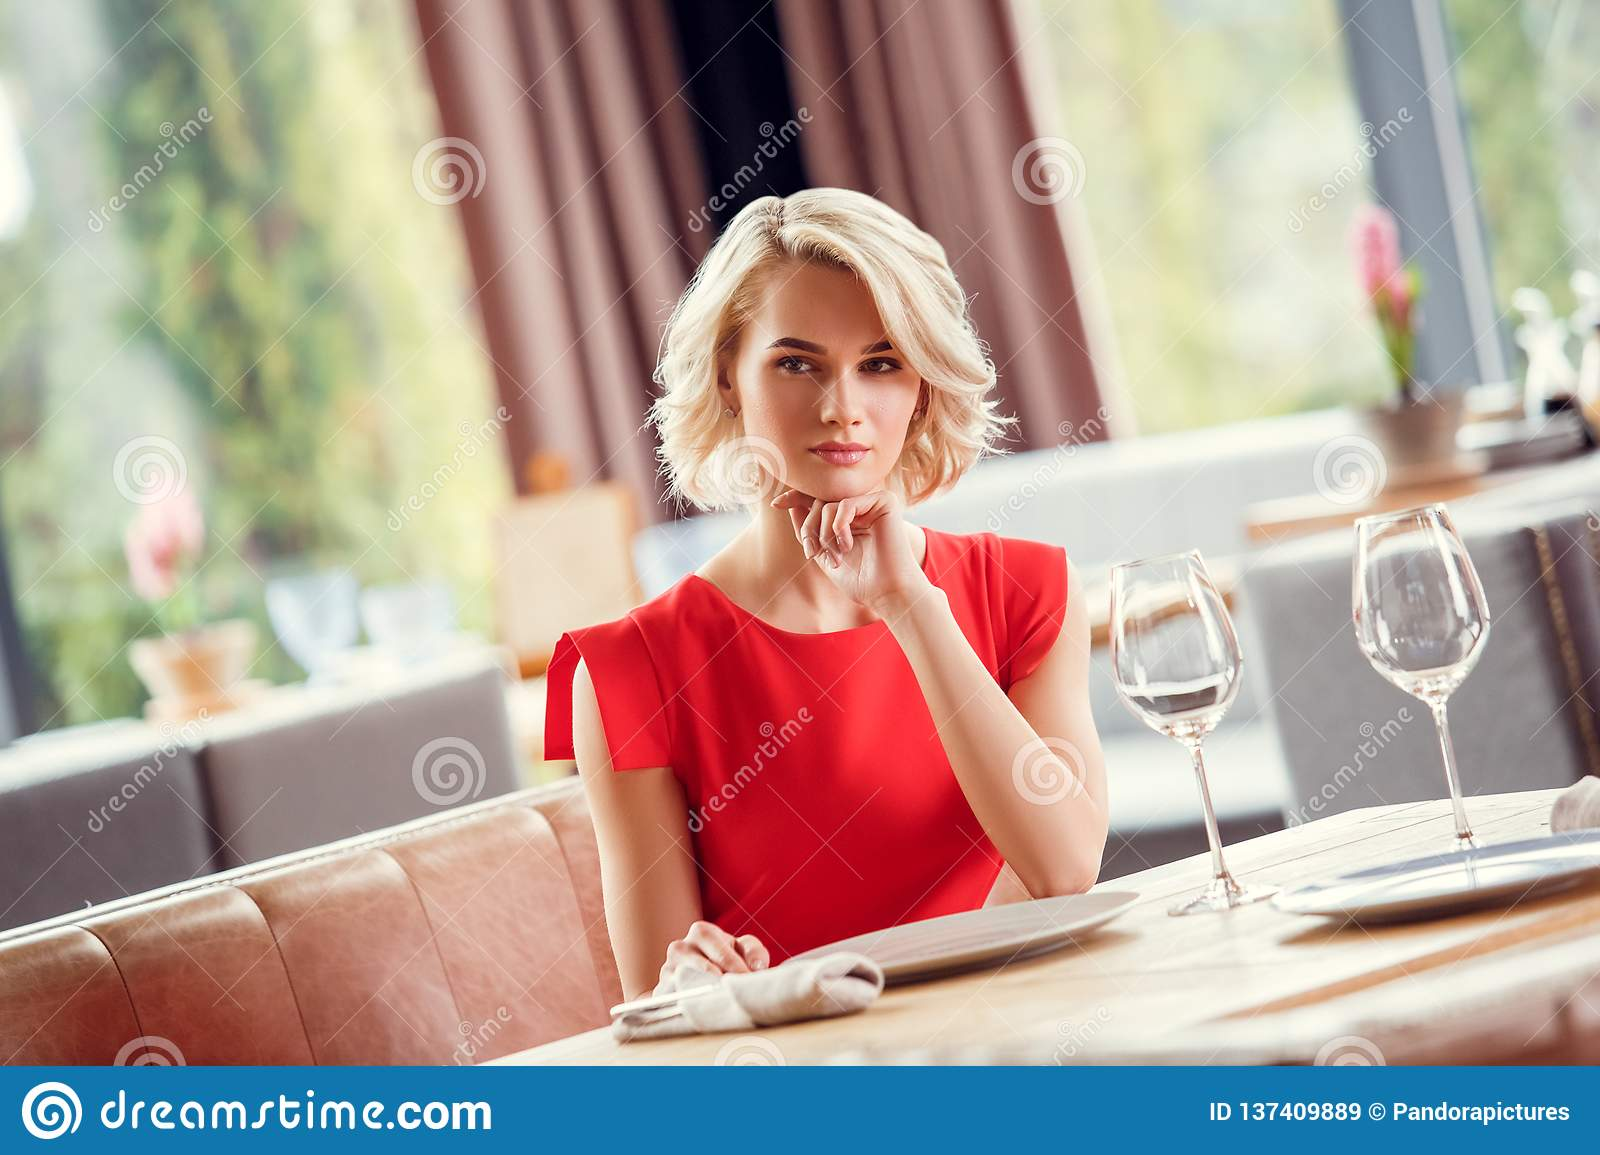 dating confident woman